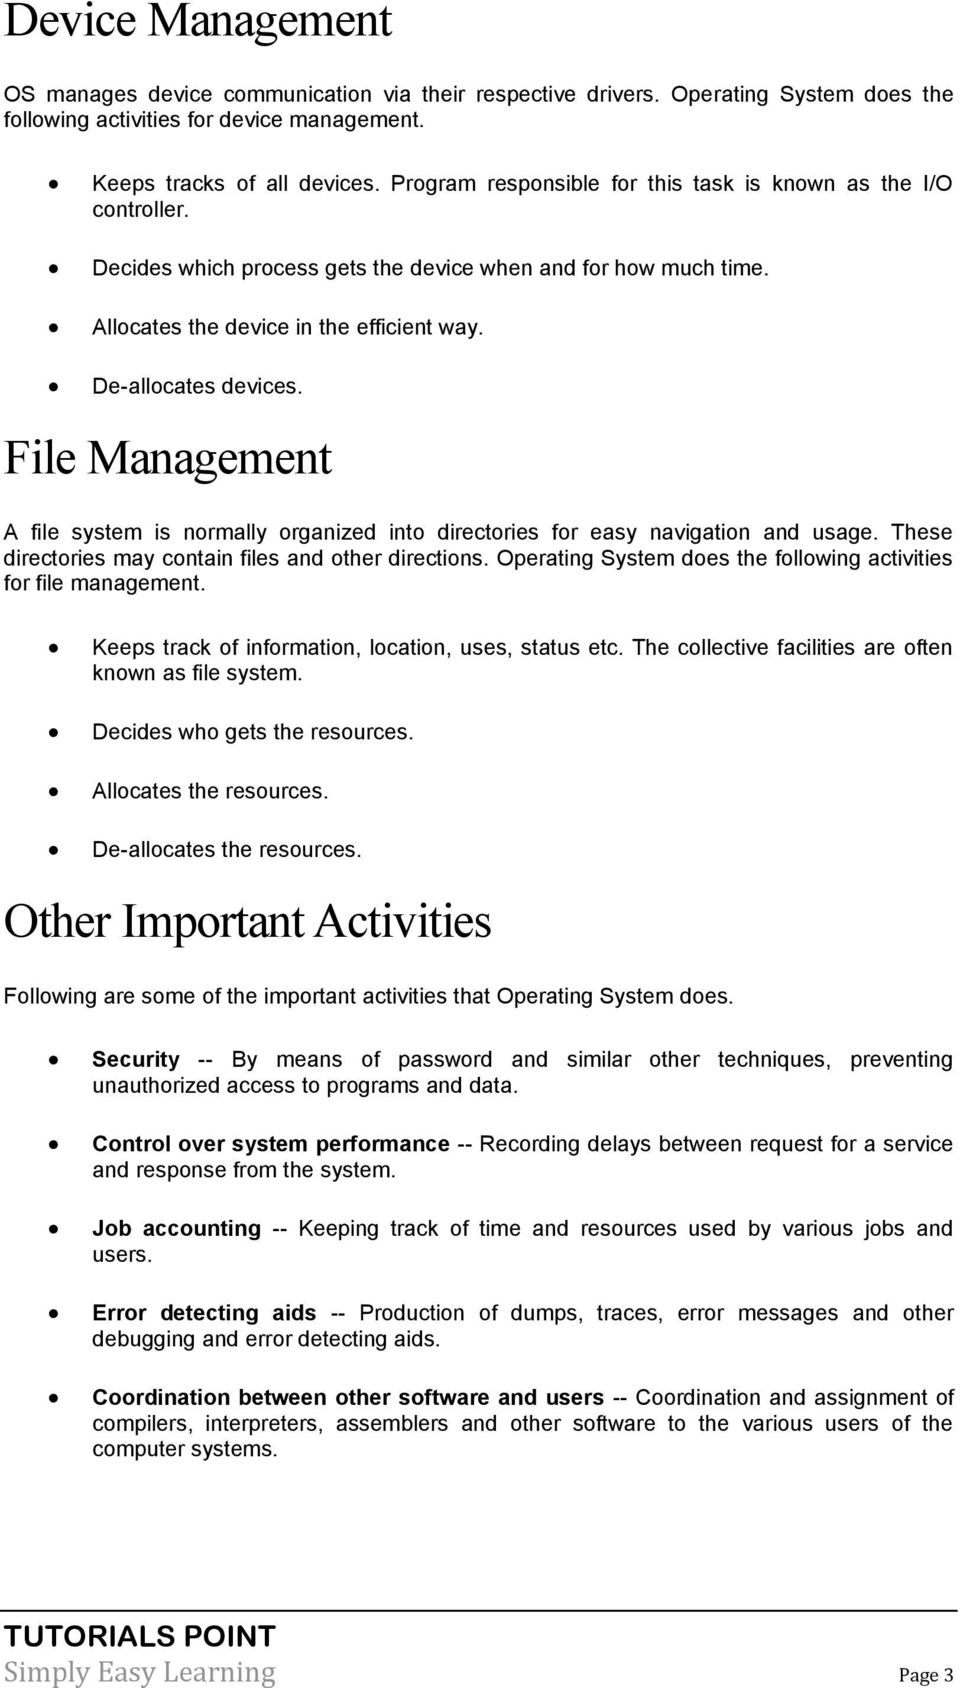 File Management A file system is normally organized into directories for easy navigation and usage. These directories may contain files and other directions.